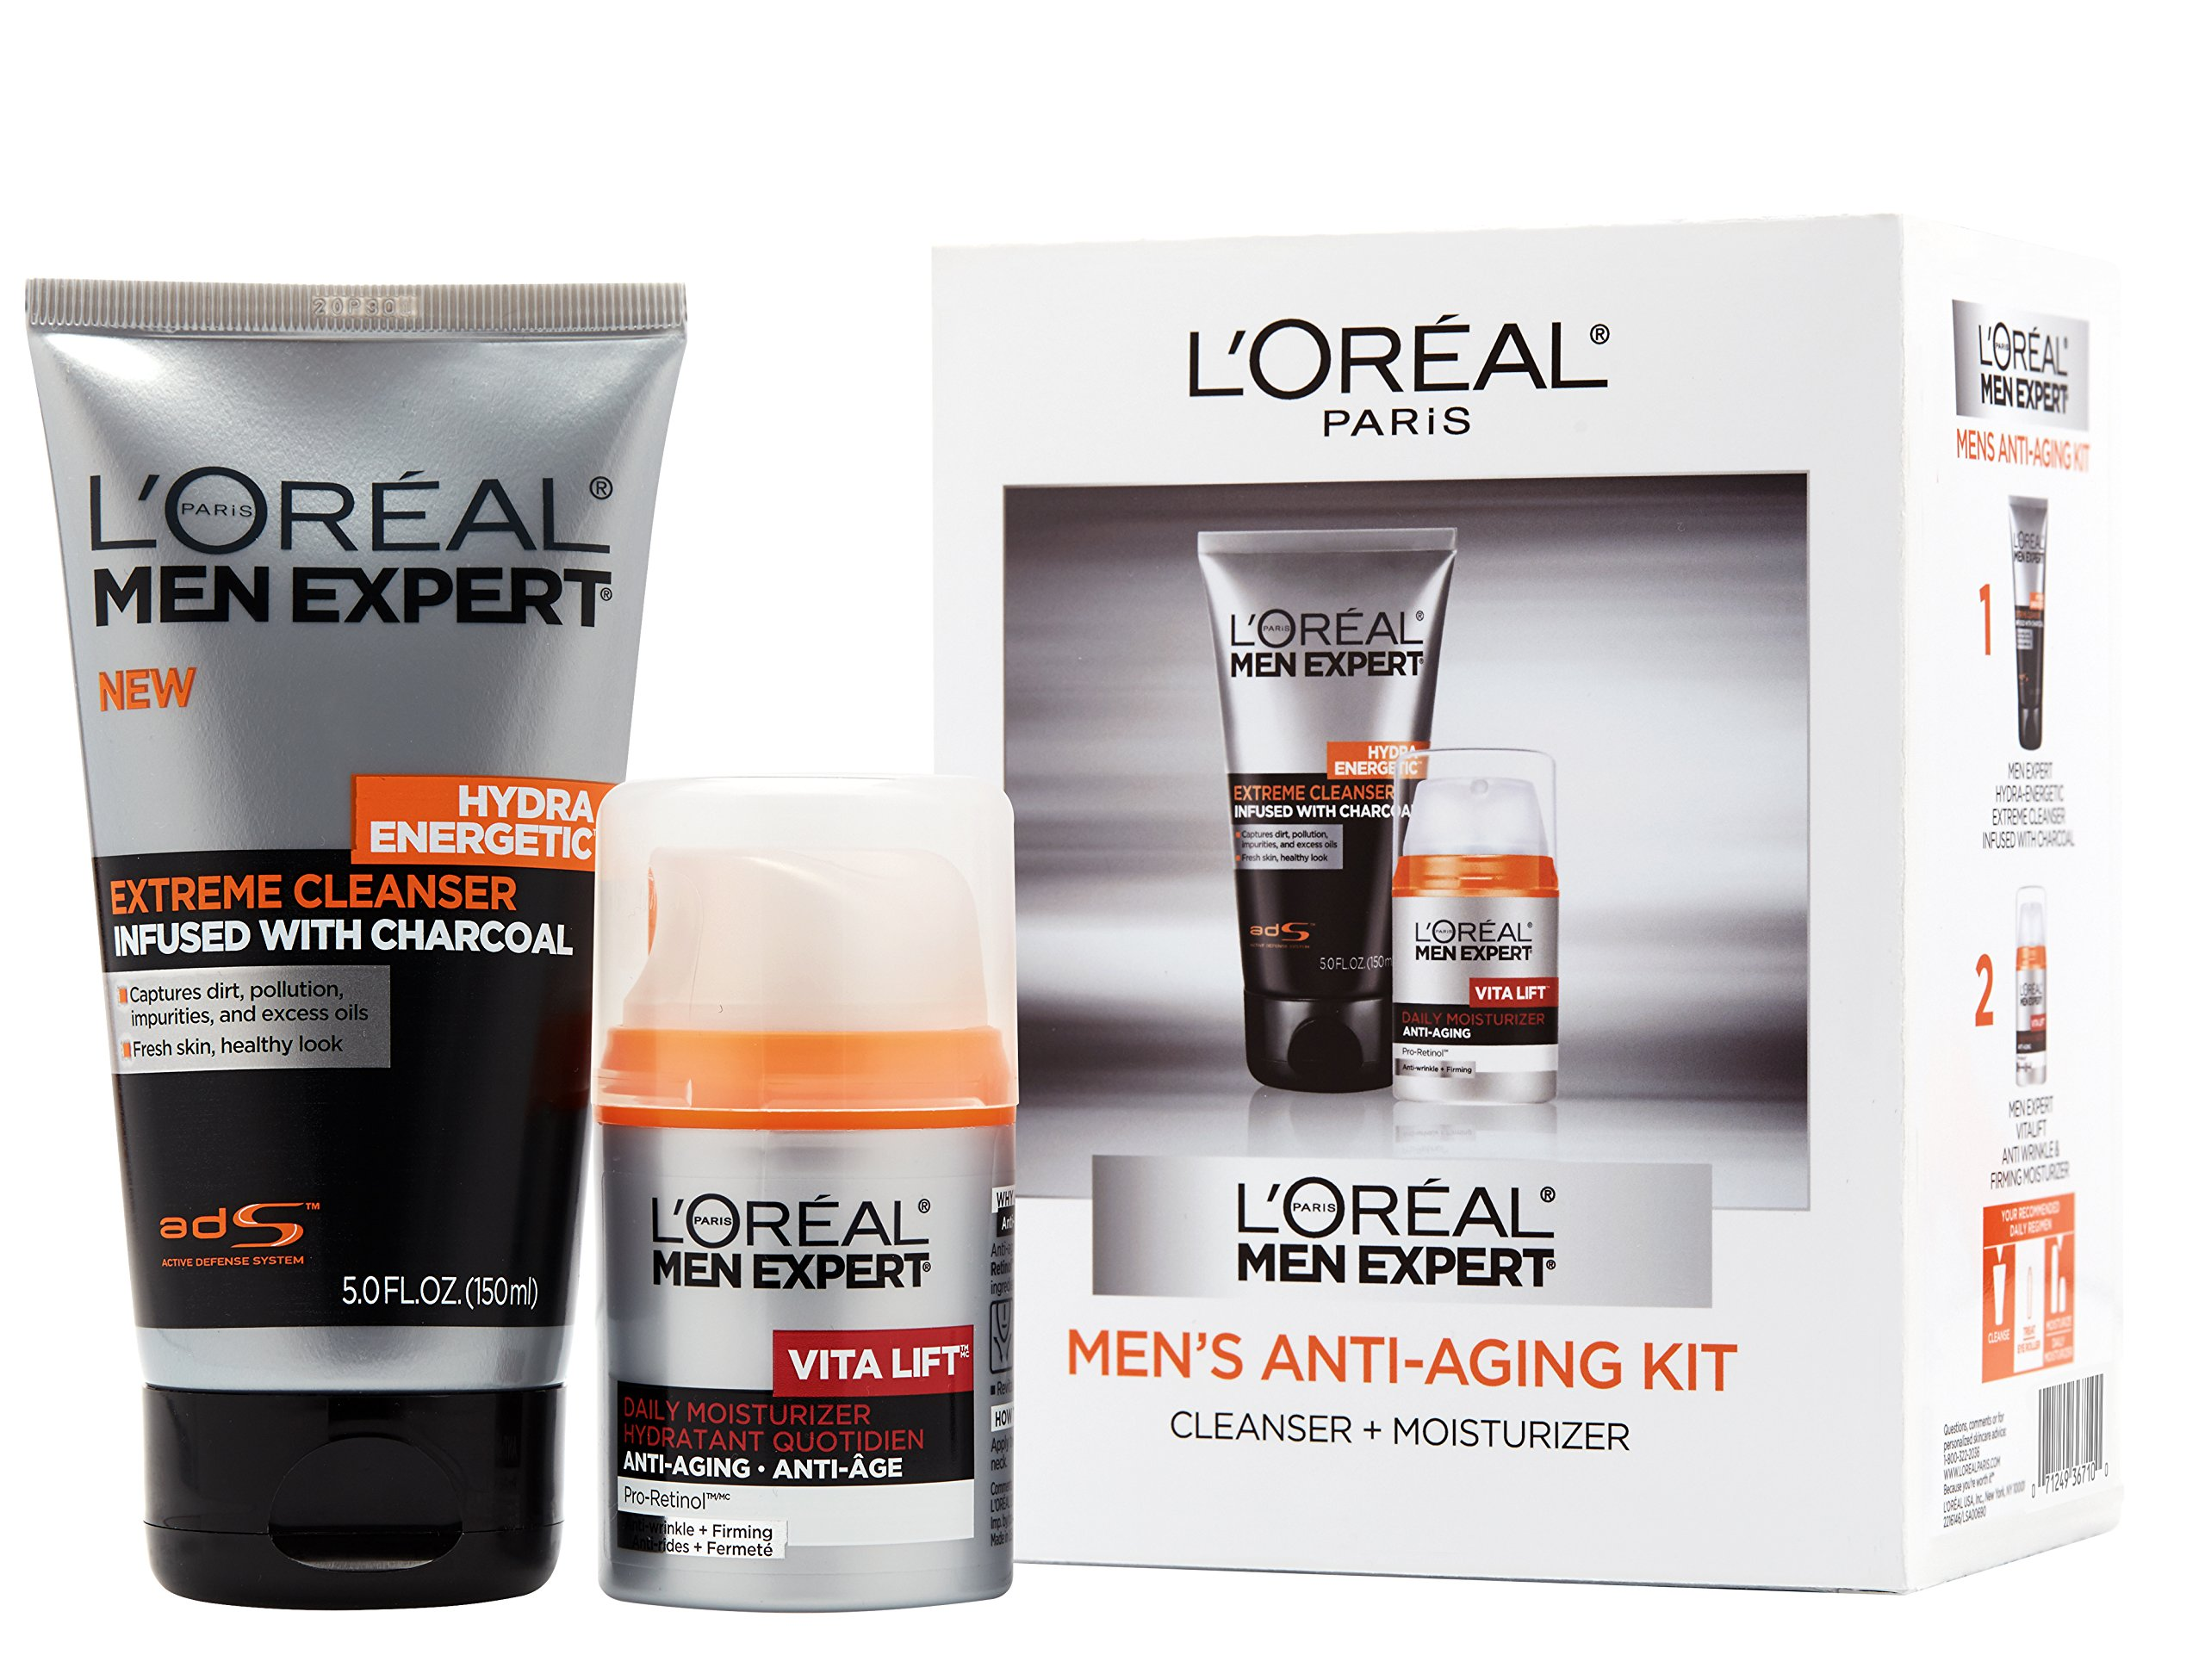 L'Oréal Paris Men Expert Anti-Aging Set including Facial Cleanser with Charcoal and Anti-Wrinkle & Firming Face Moisturizer with Pro-Retinol , 1 kit by L'Oreal Paris